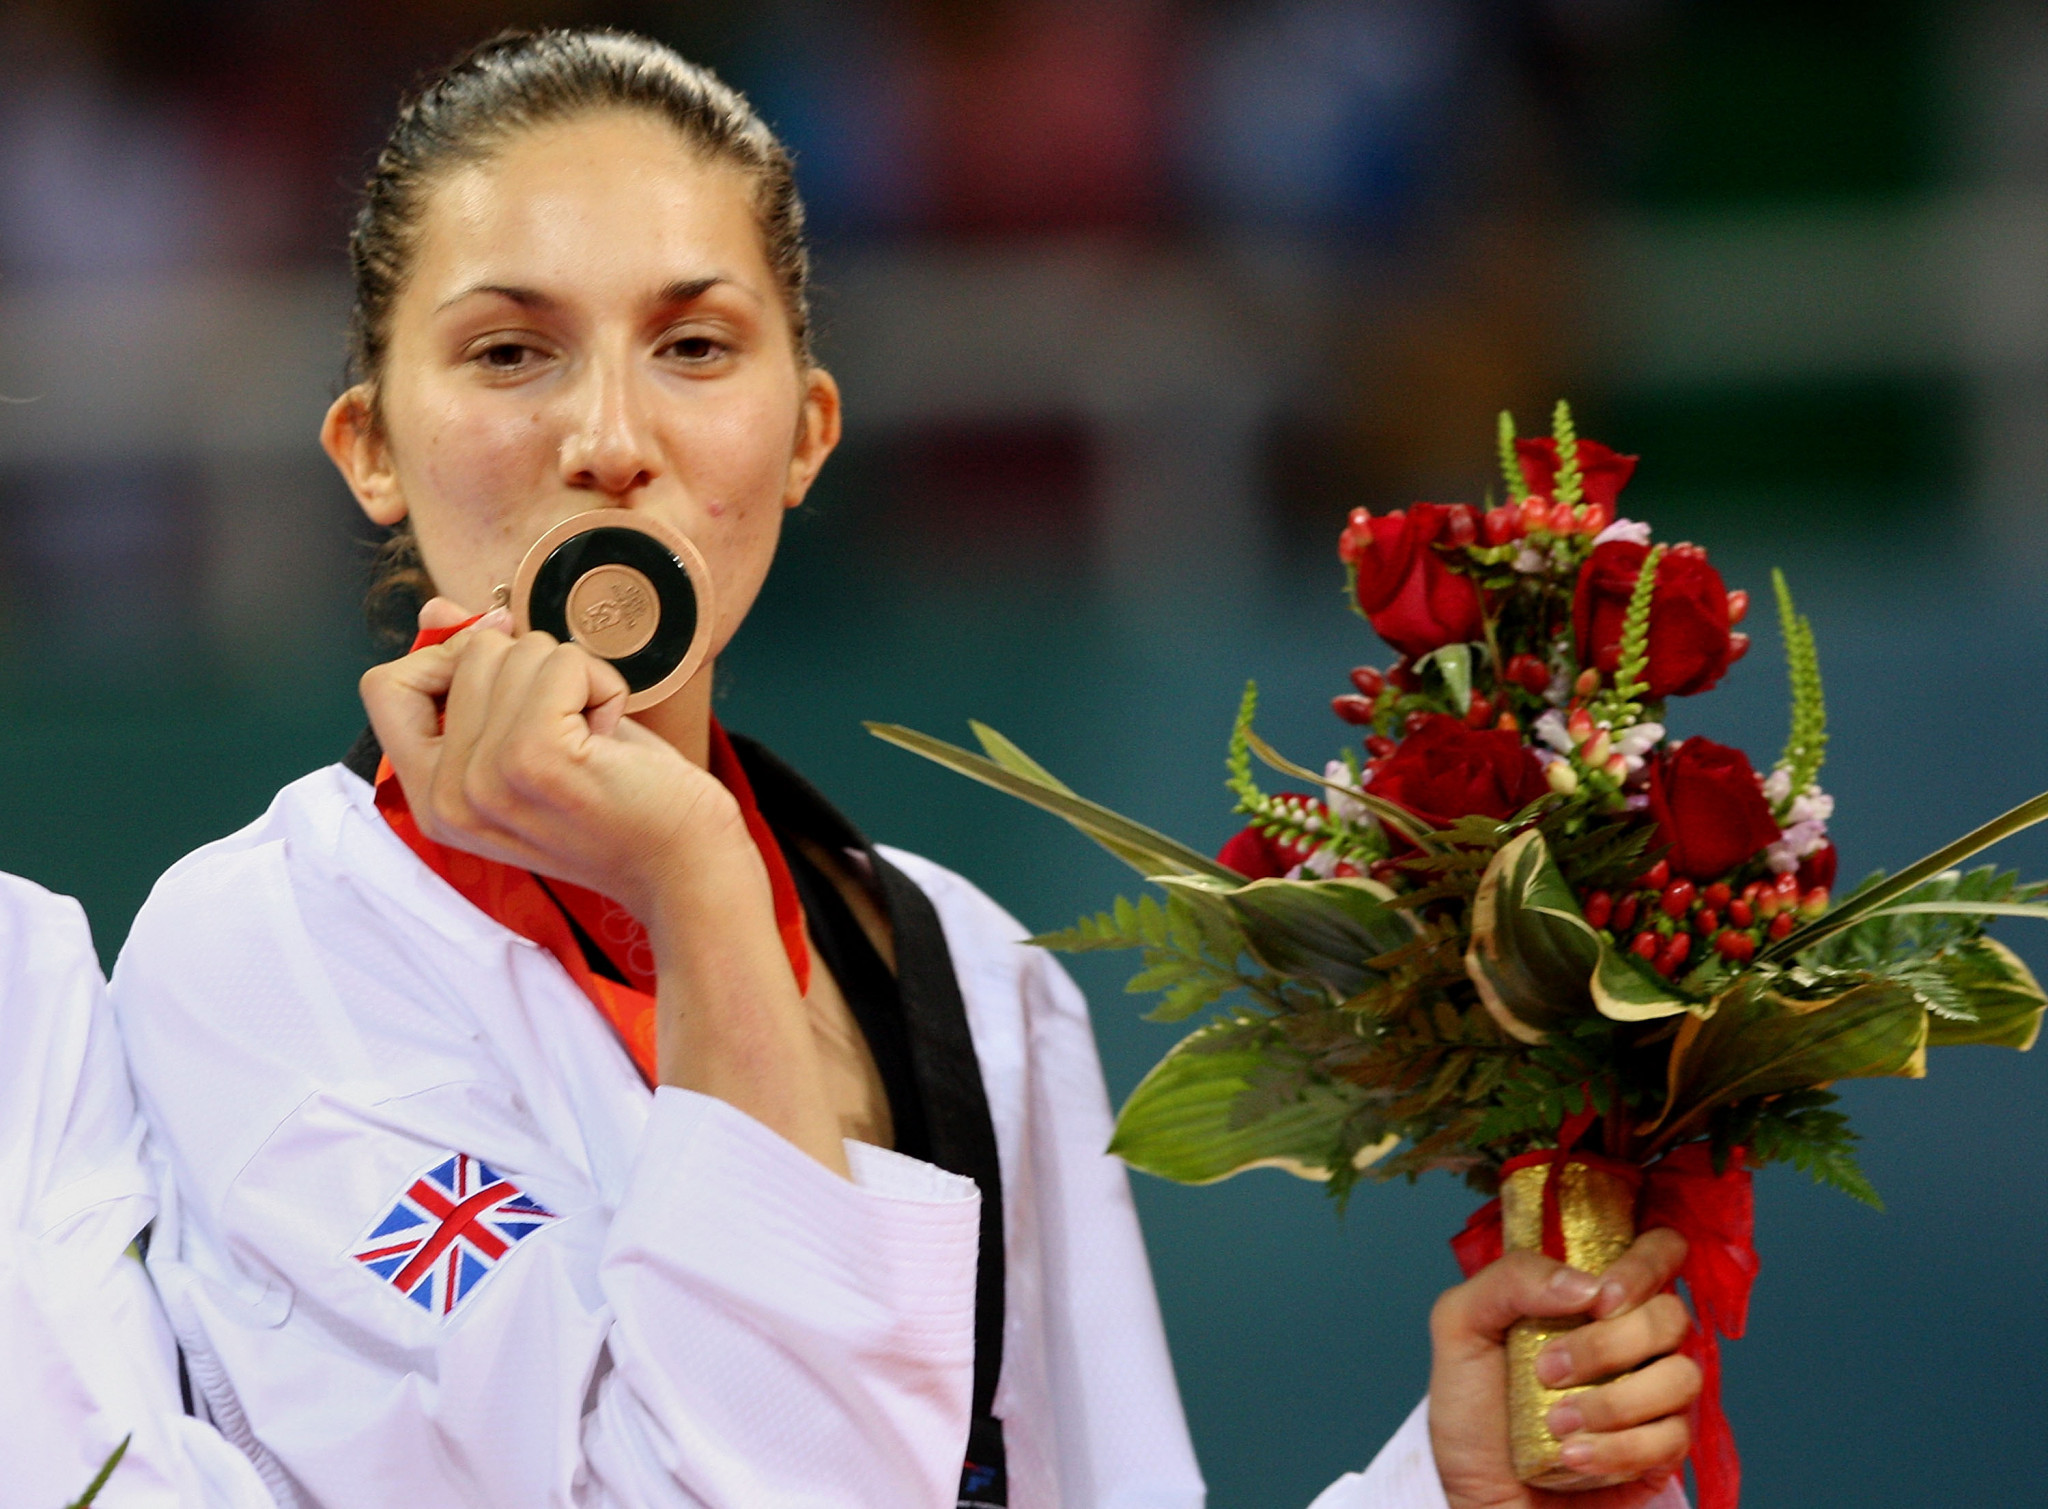 British Taekwondo President Sarah Stevenson won her country's first Olympic medal in taekwondo at Beijing 2008 ©Getty Images